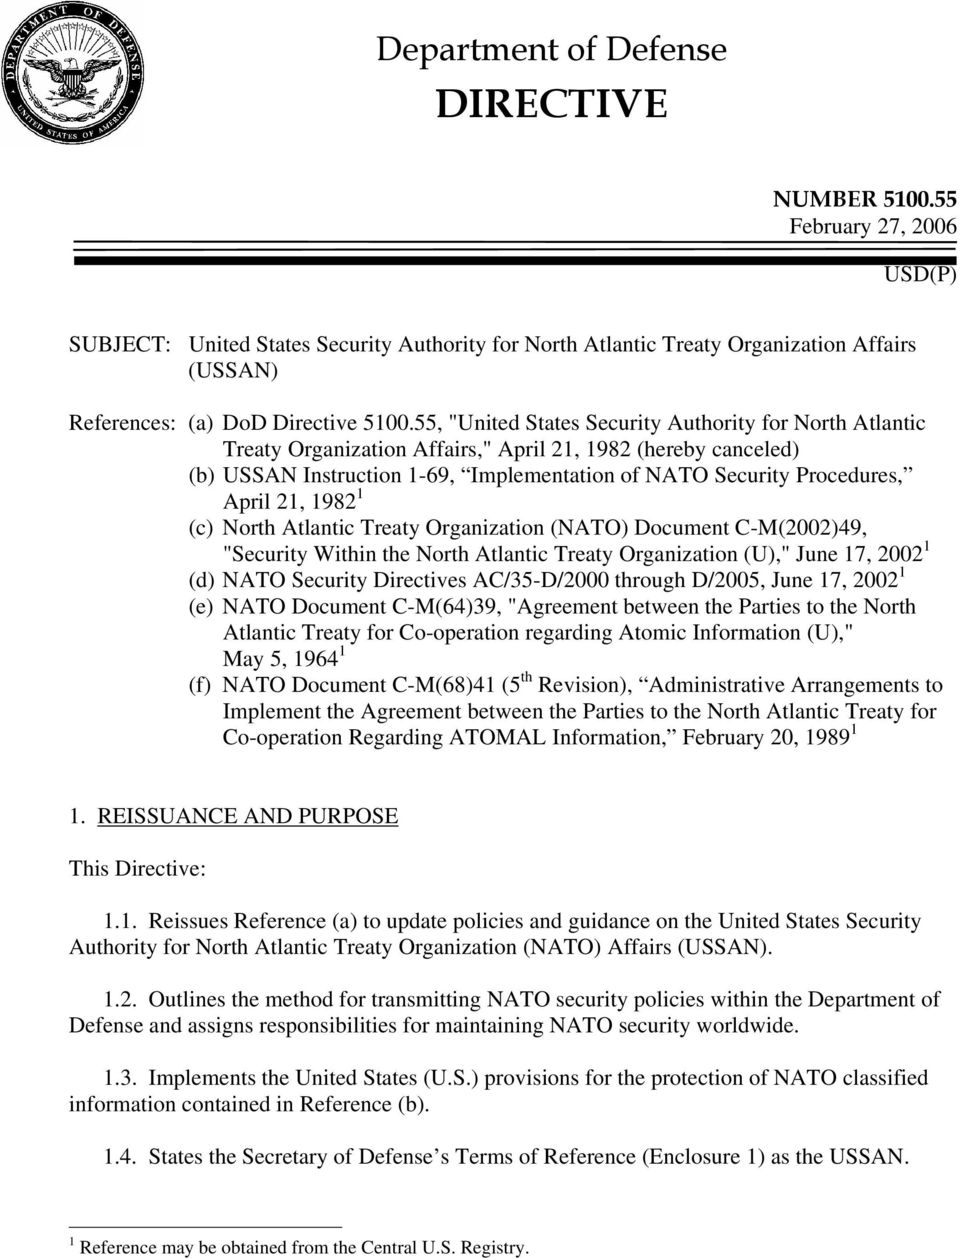 "55, ""United States Security Authority for North Atlantic Treaty Organization Affairs,"" April 21, 1982 (hereby canceled) (b) USSAN Instruction 1-69, Implementation of NATO Security Procedures, April"